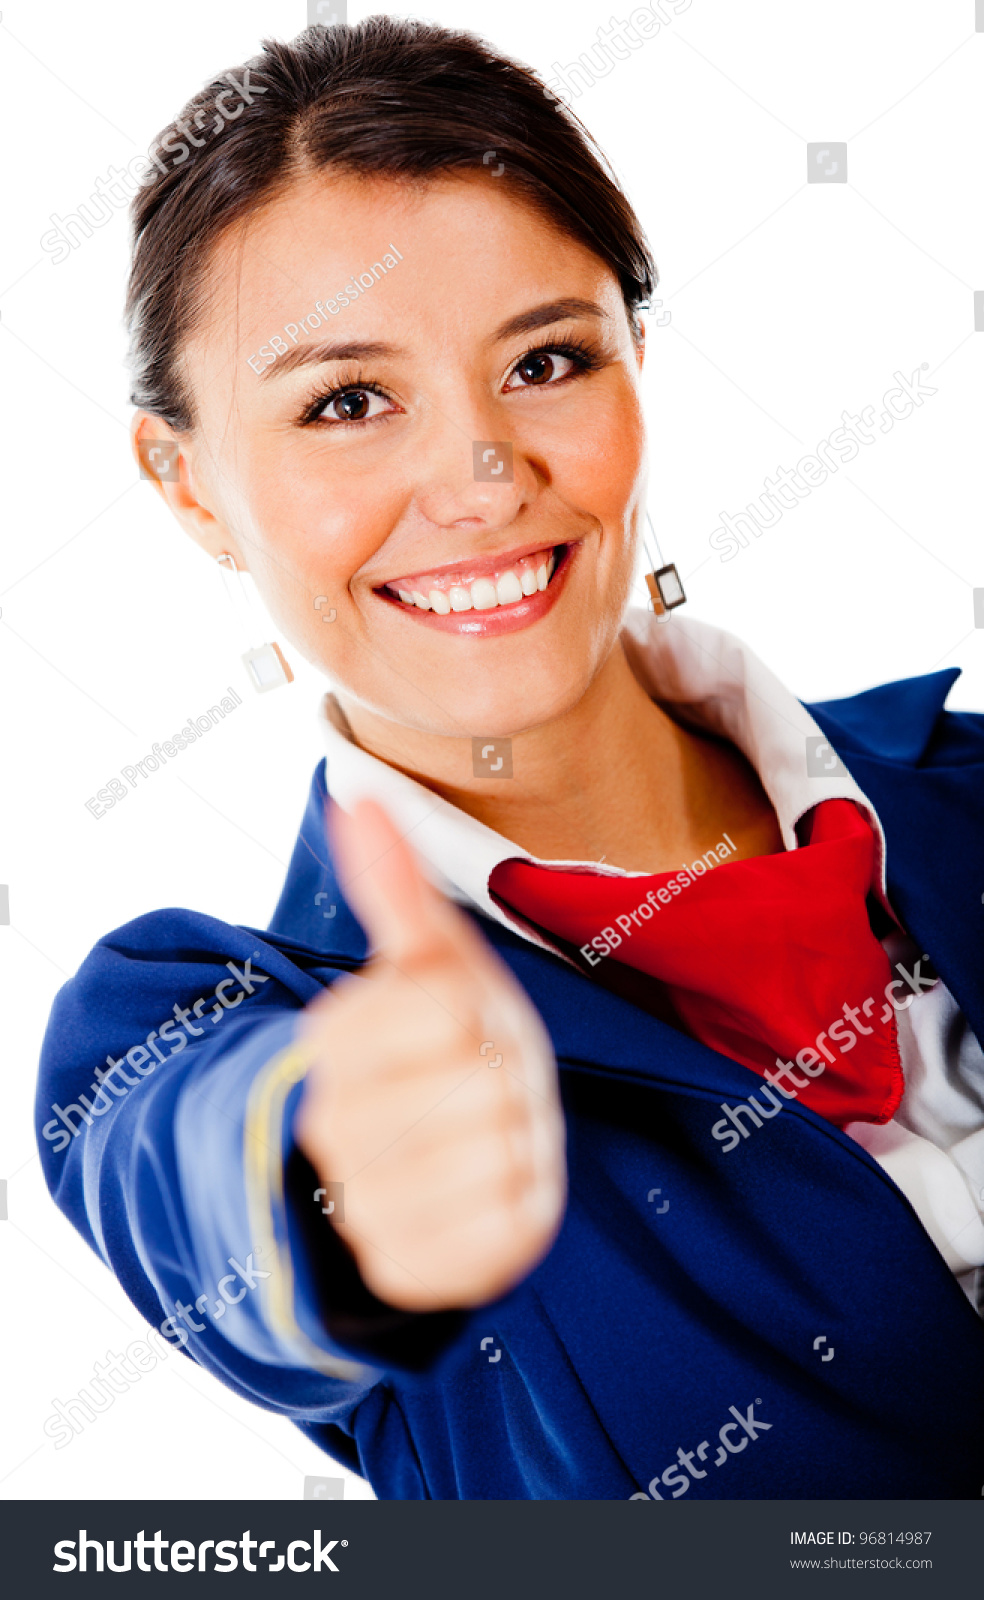 Happy flight attendant with thumbs up - isolated over a white background